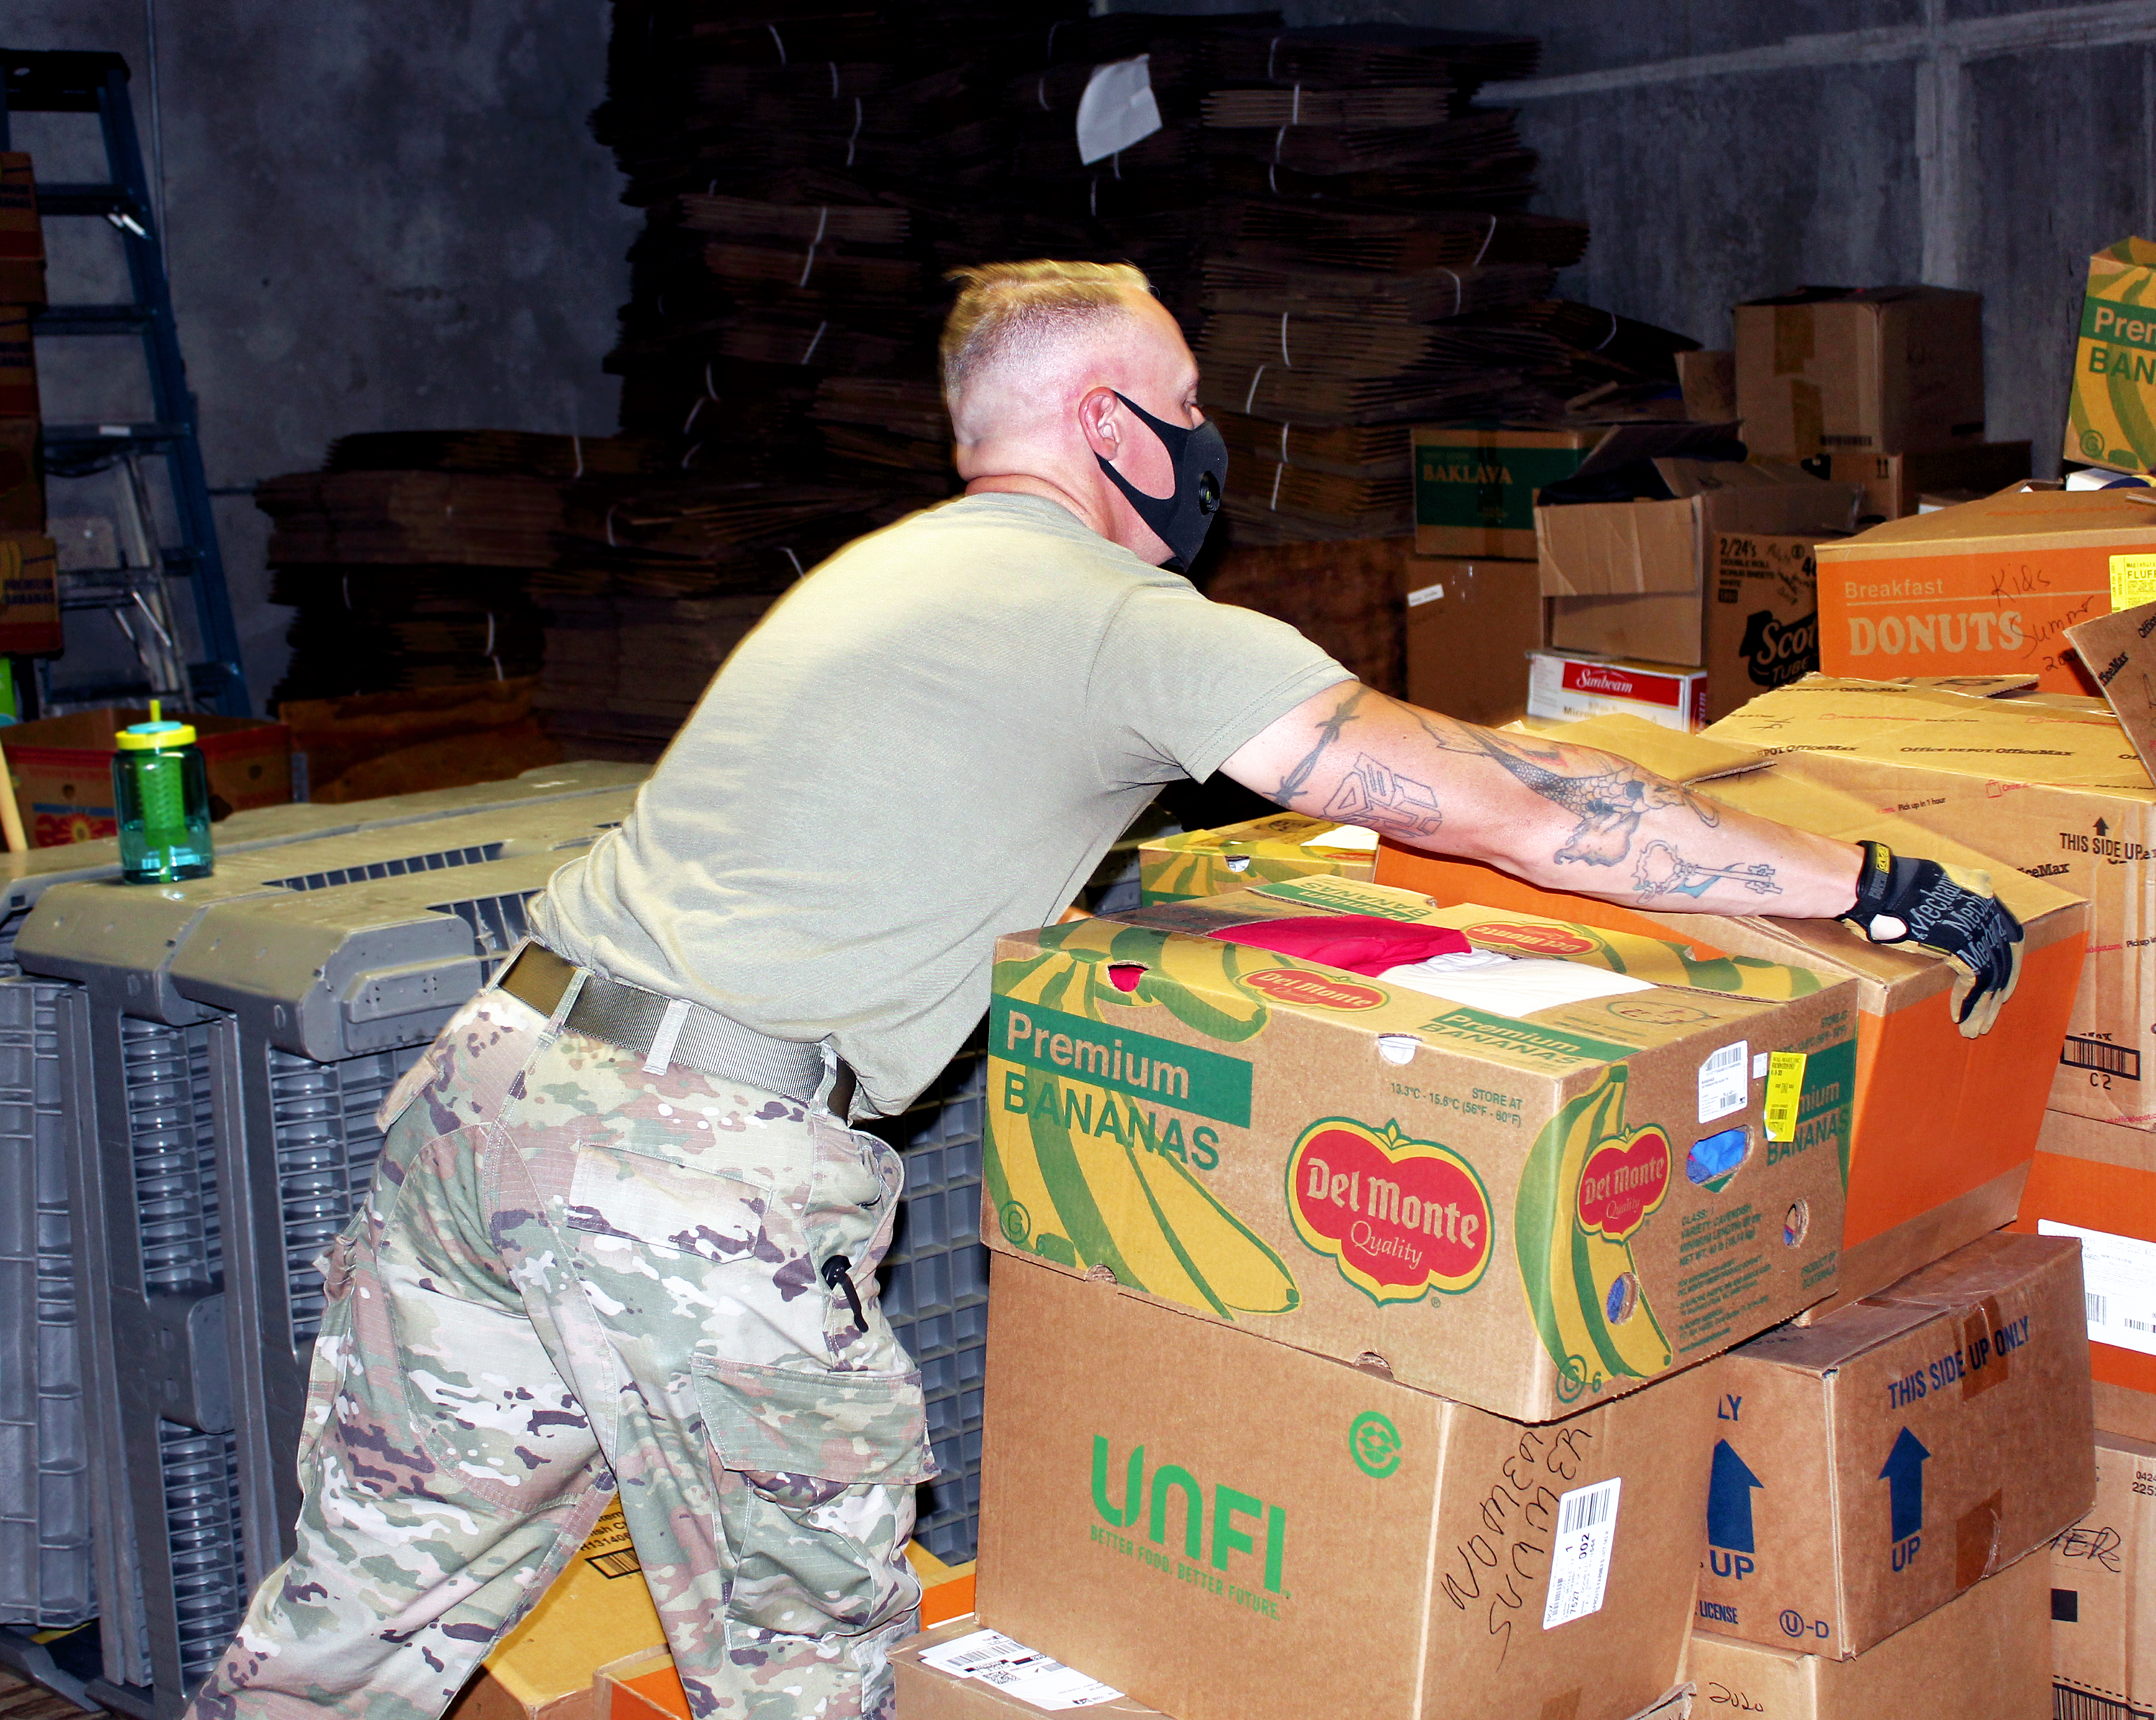 Guard moving boxes